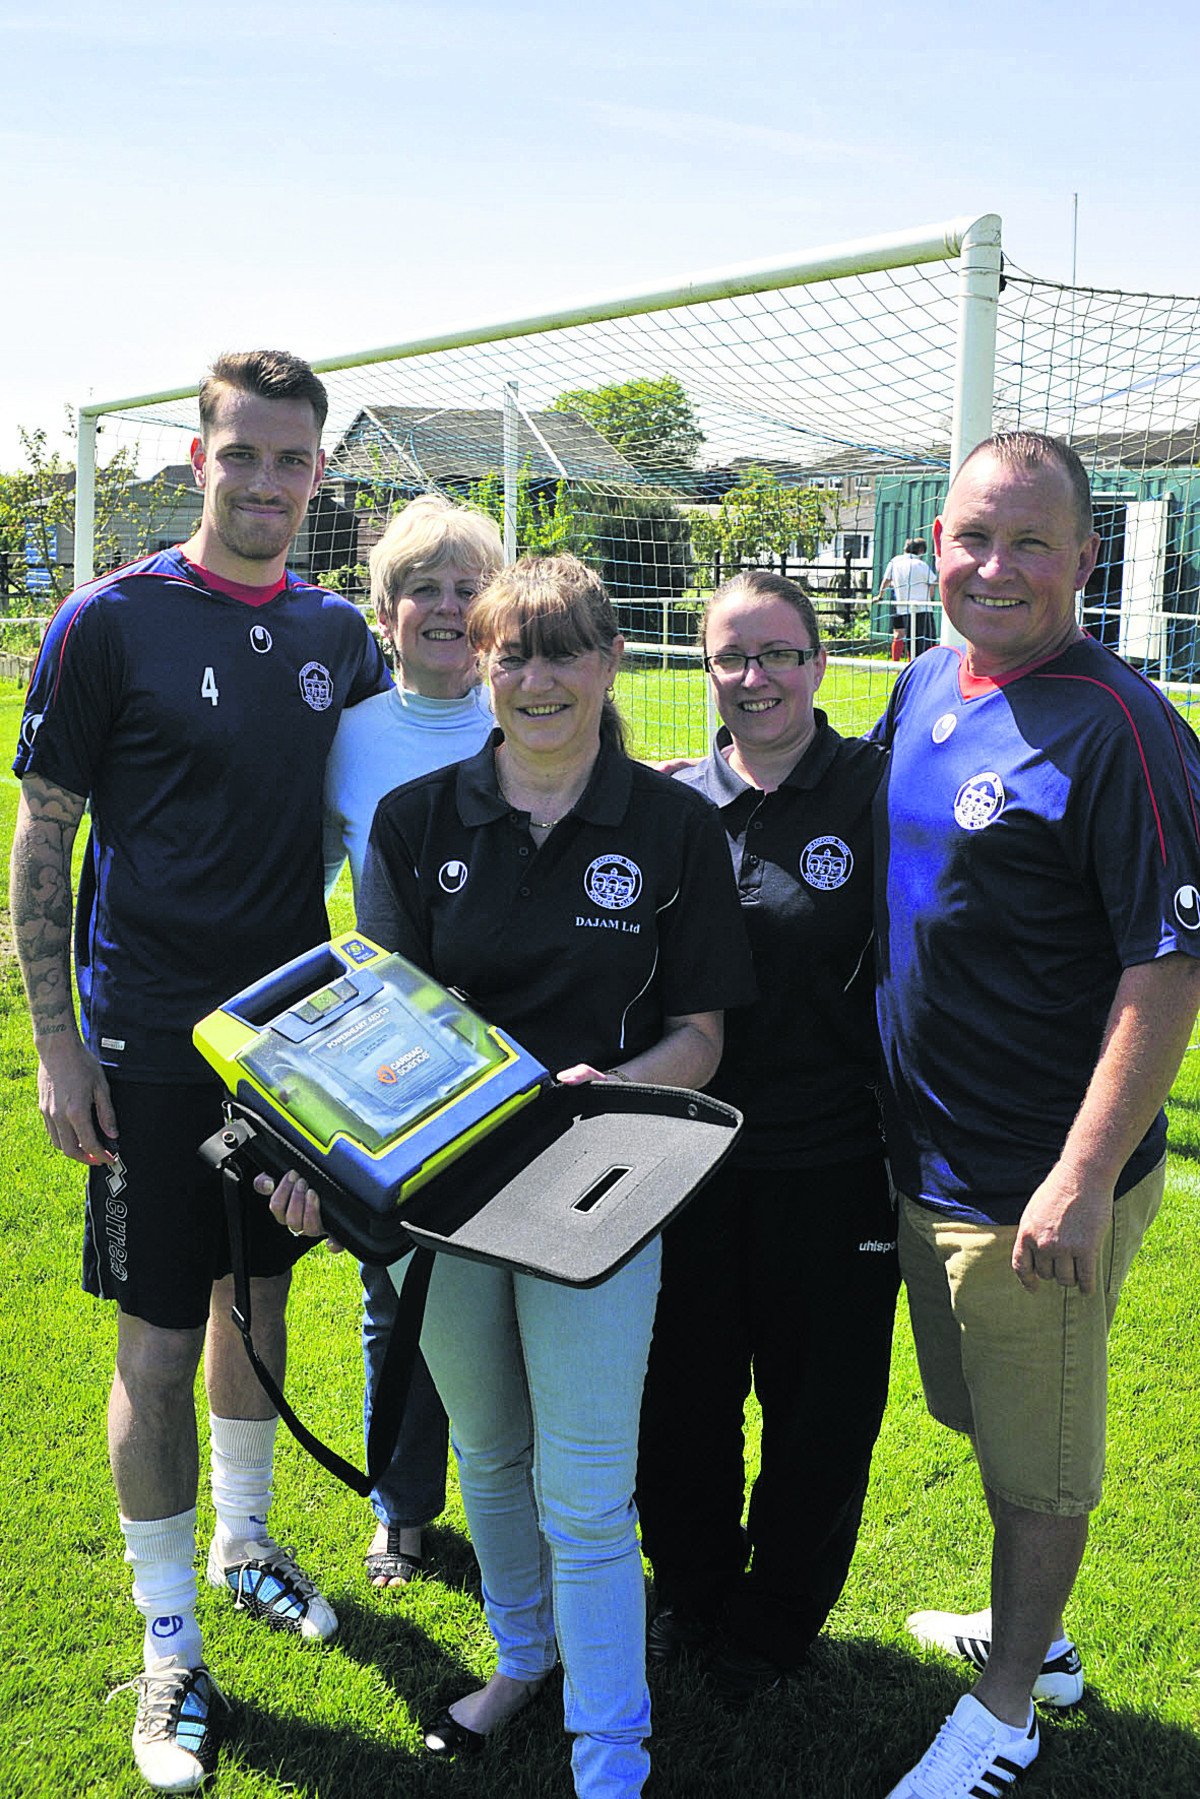 Bradford Town FC captain Tom Evans, treasurer Pat Stevens, secretary Nikki Akers and committee members Vikki Cumming and Adie Hiscocks with the club's first defib